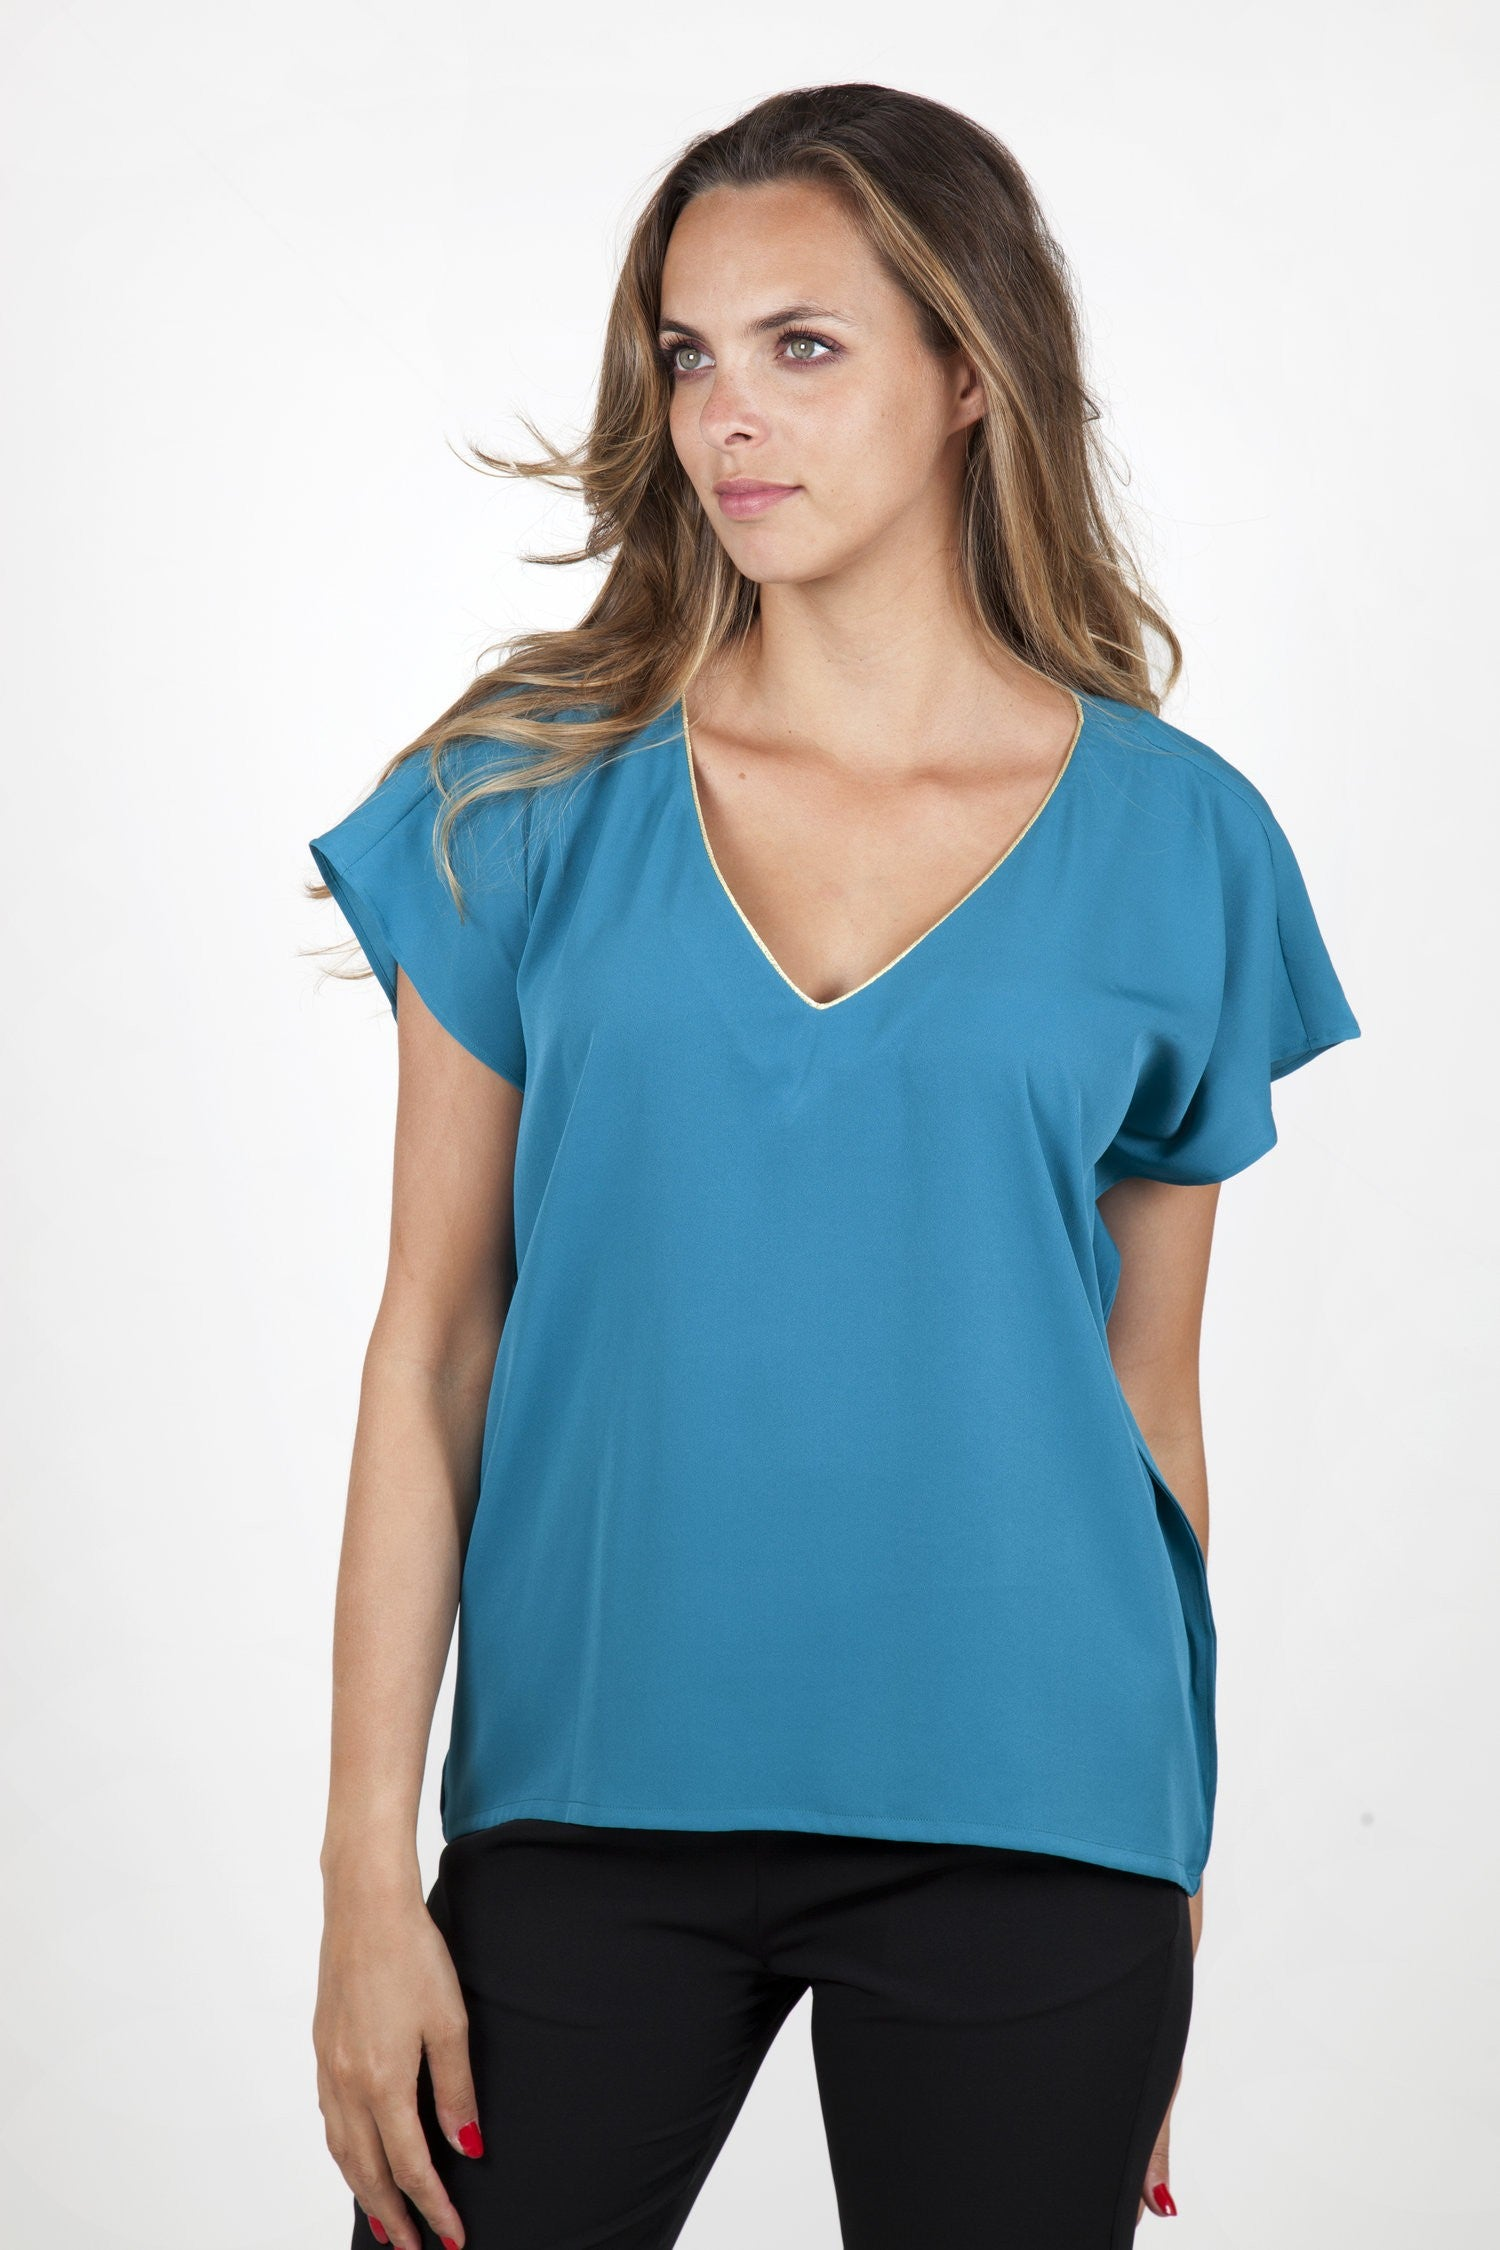 Stella Green Top Capsule Collection By Juliette - Tops Capsule Collection By Juliette